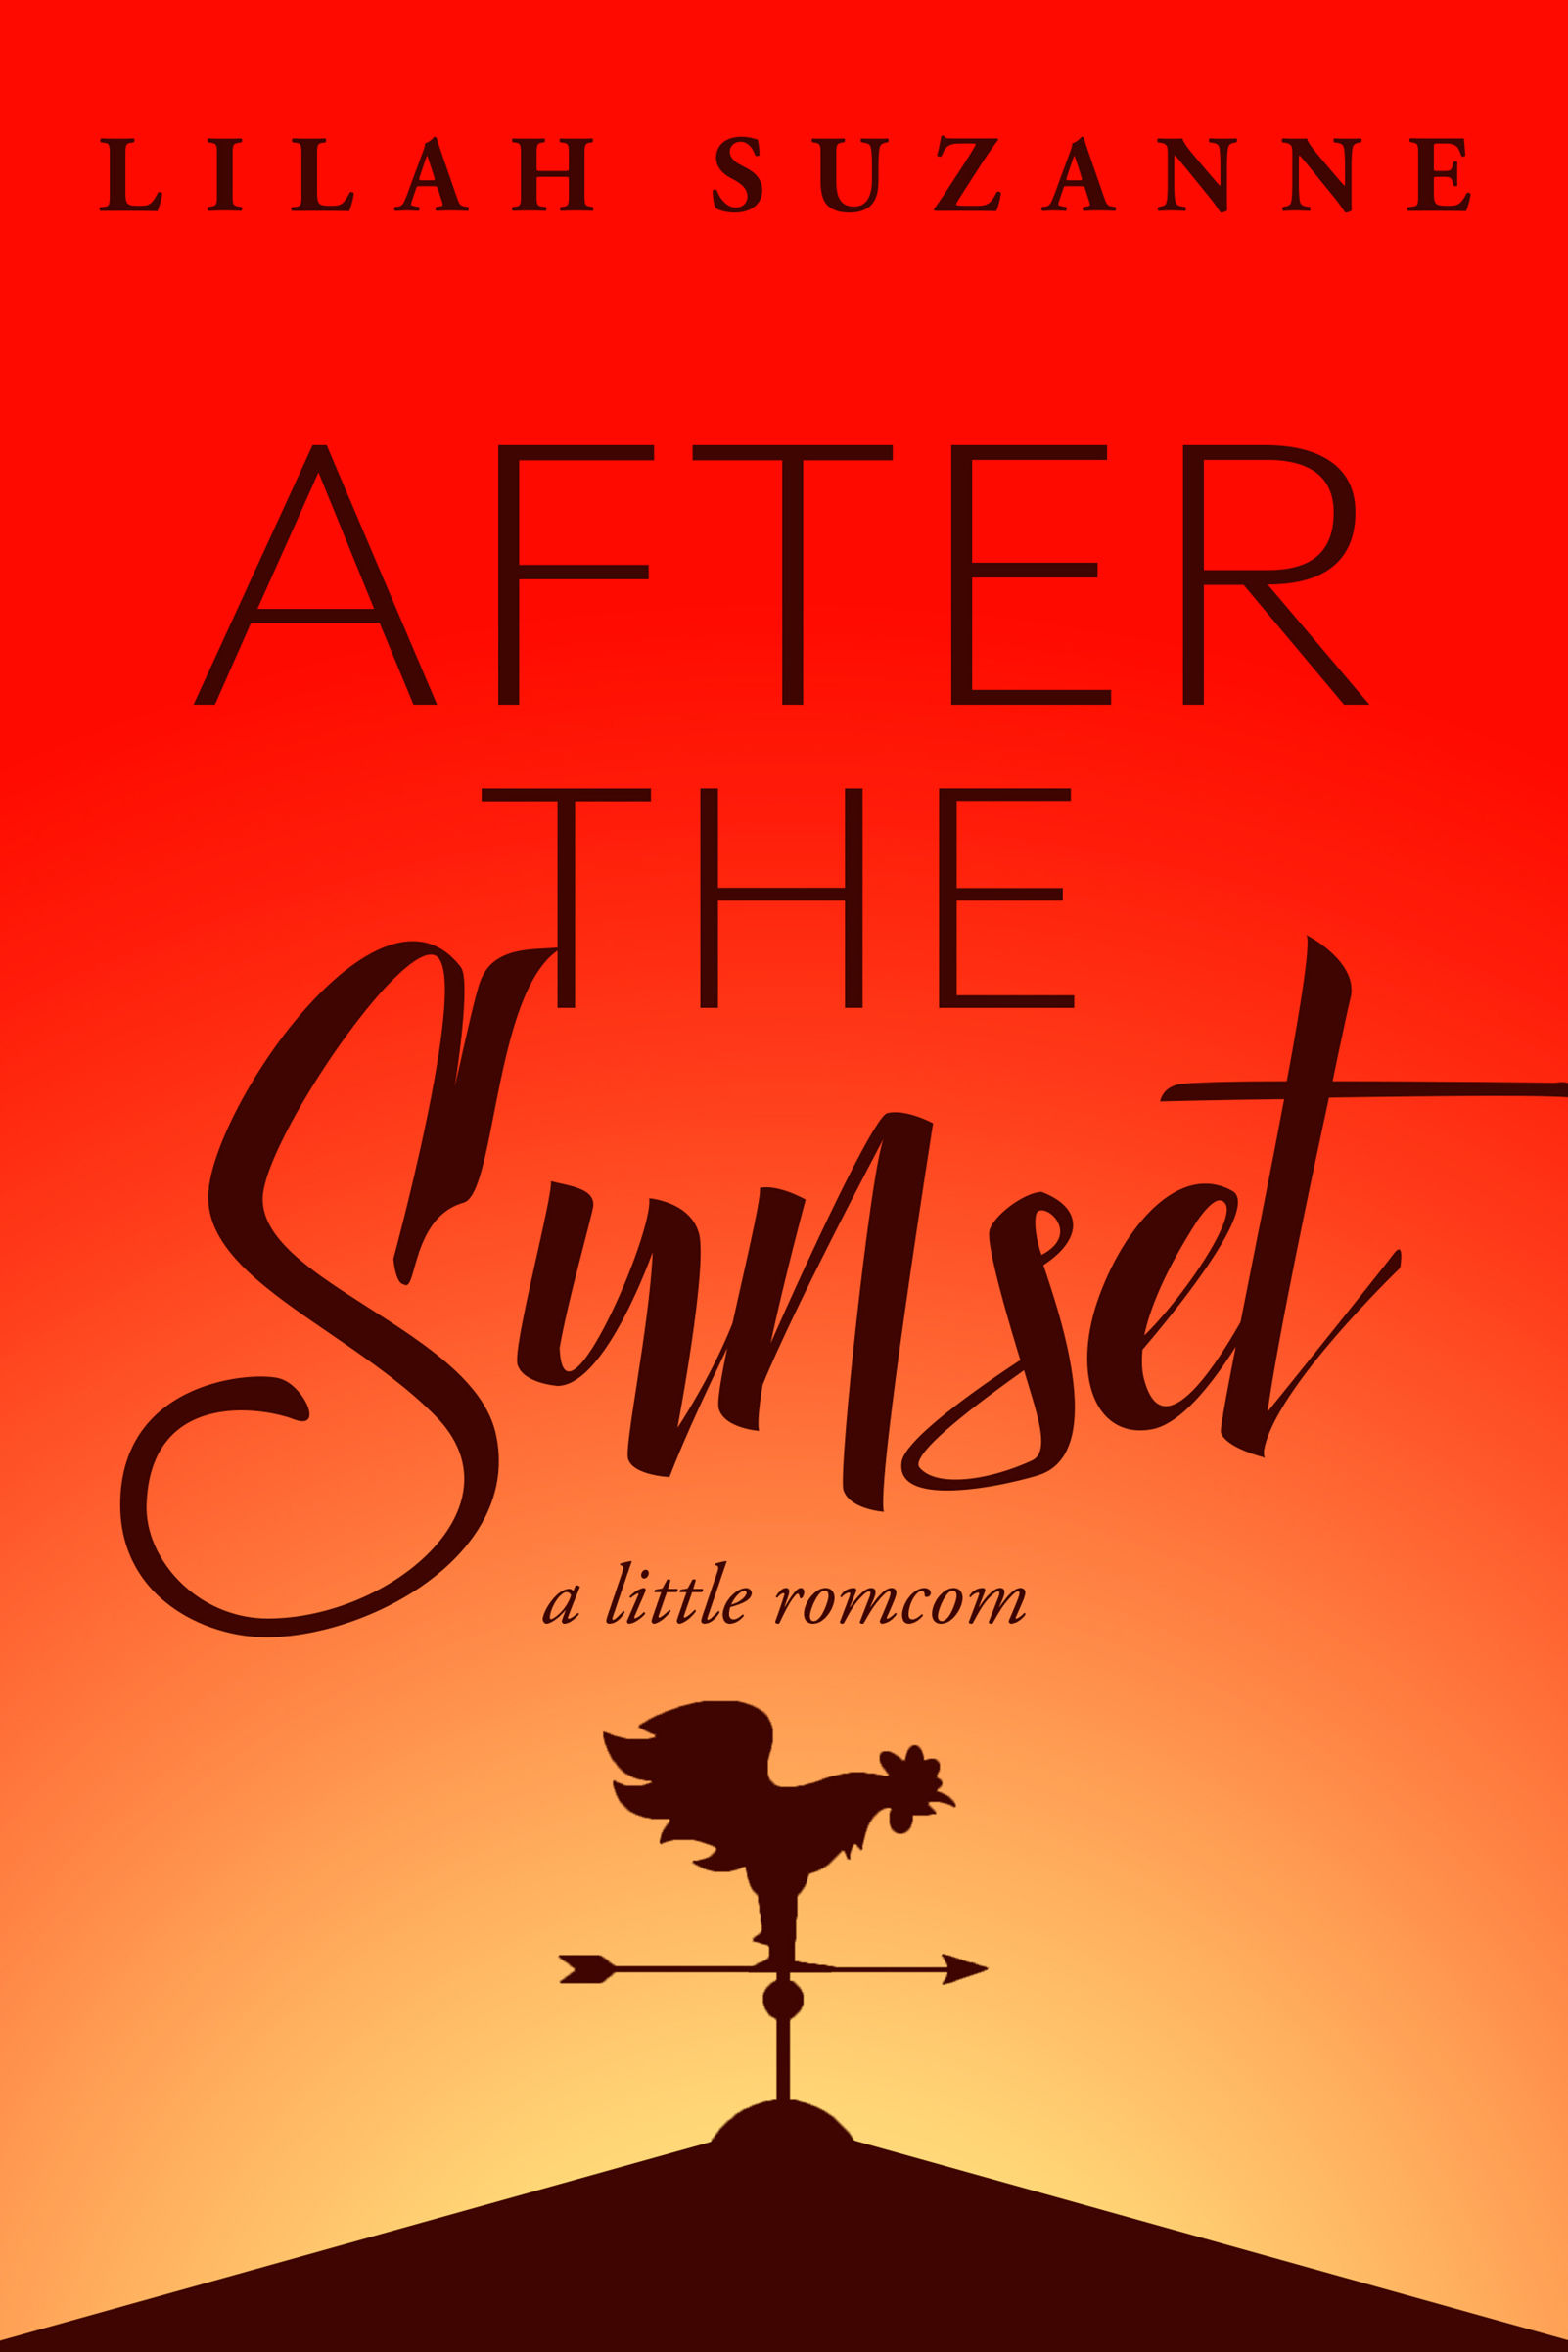 Review: After the Sunset by Lilah Suzanne